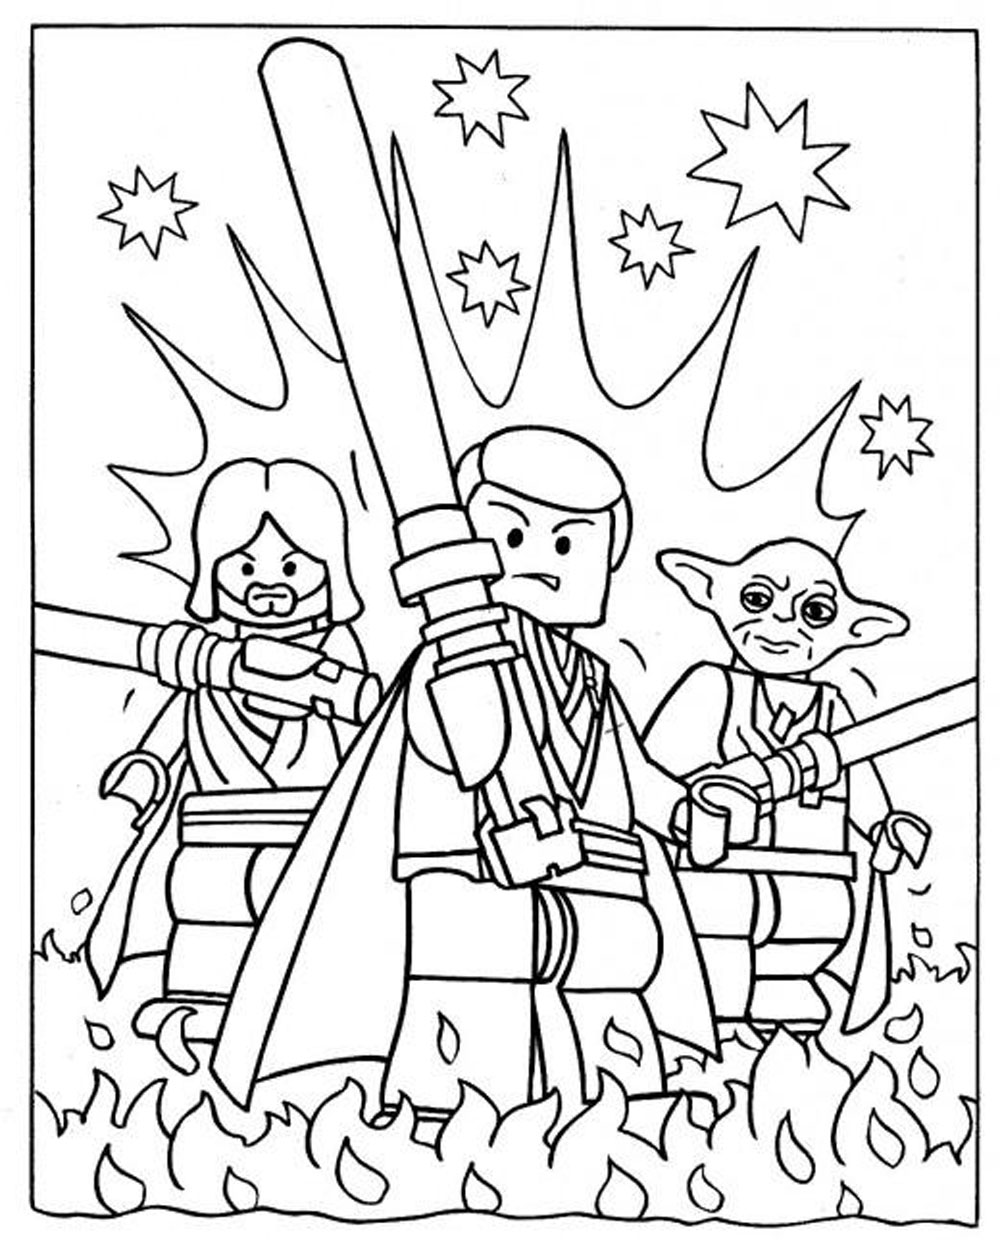 Lego Star Wars Drawing at GetDrawings.com   Free for personal use ...